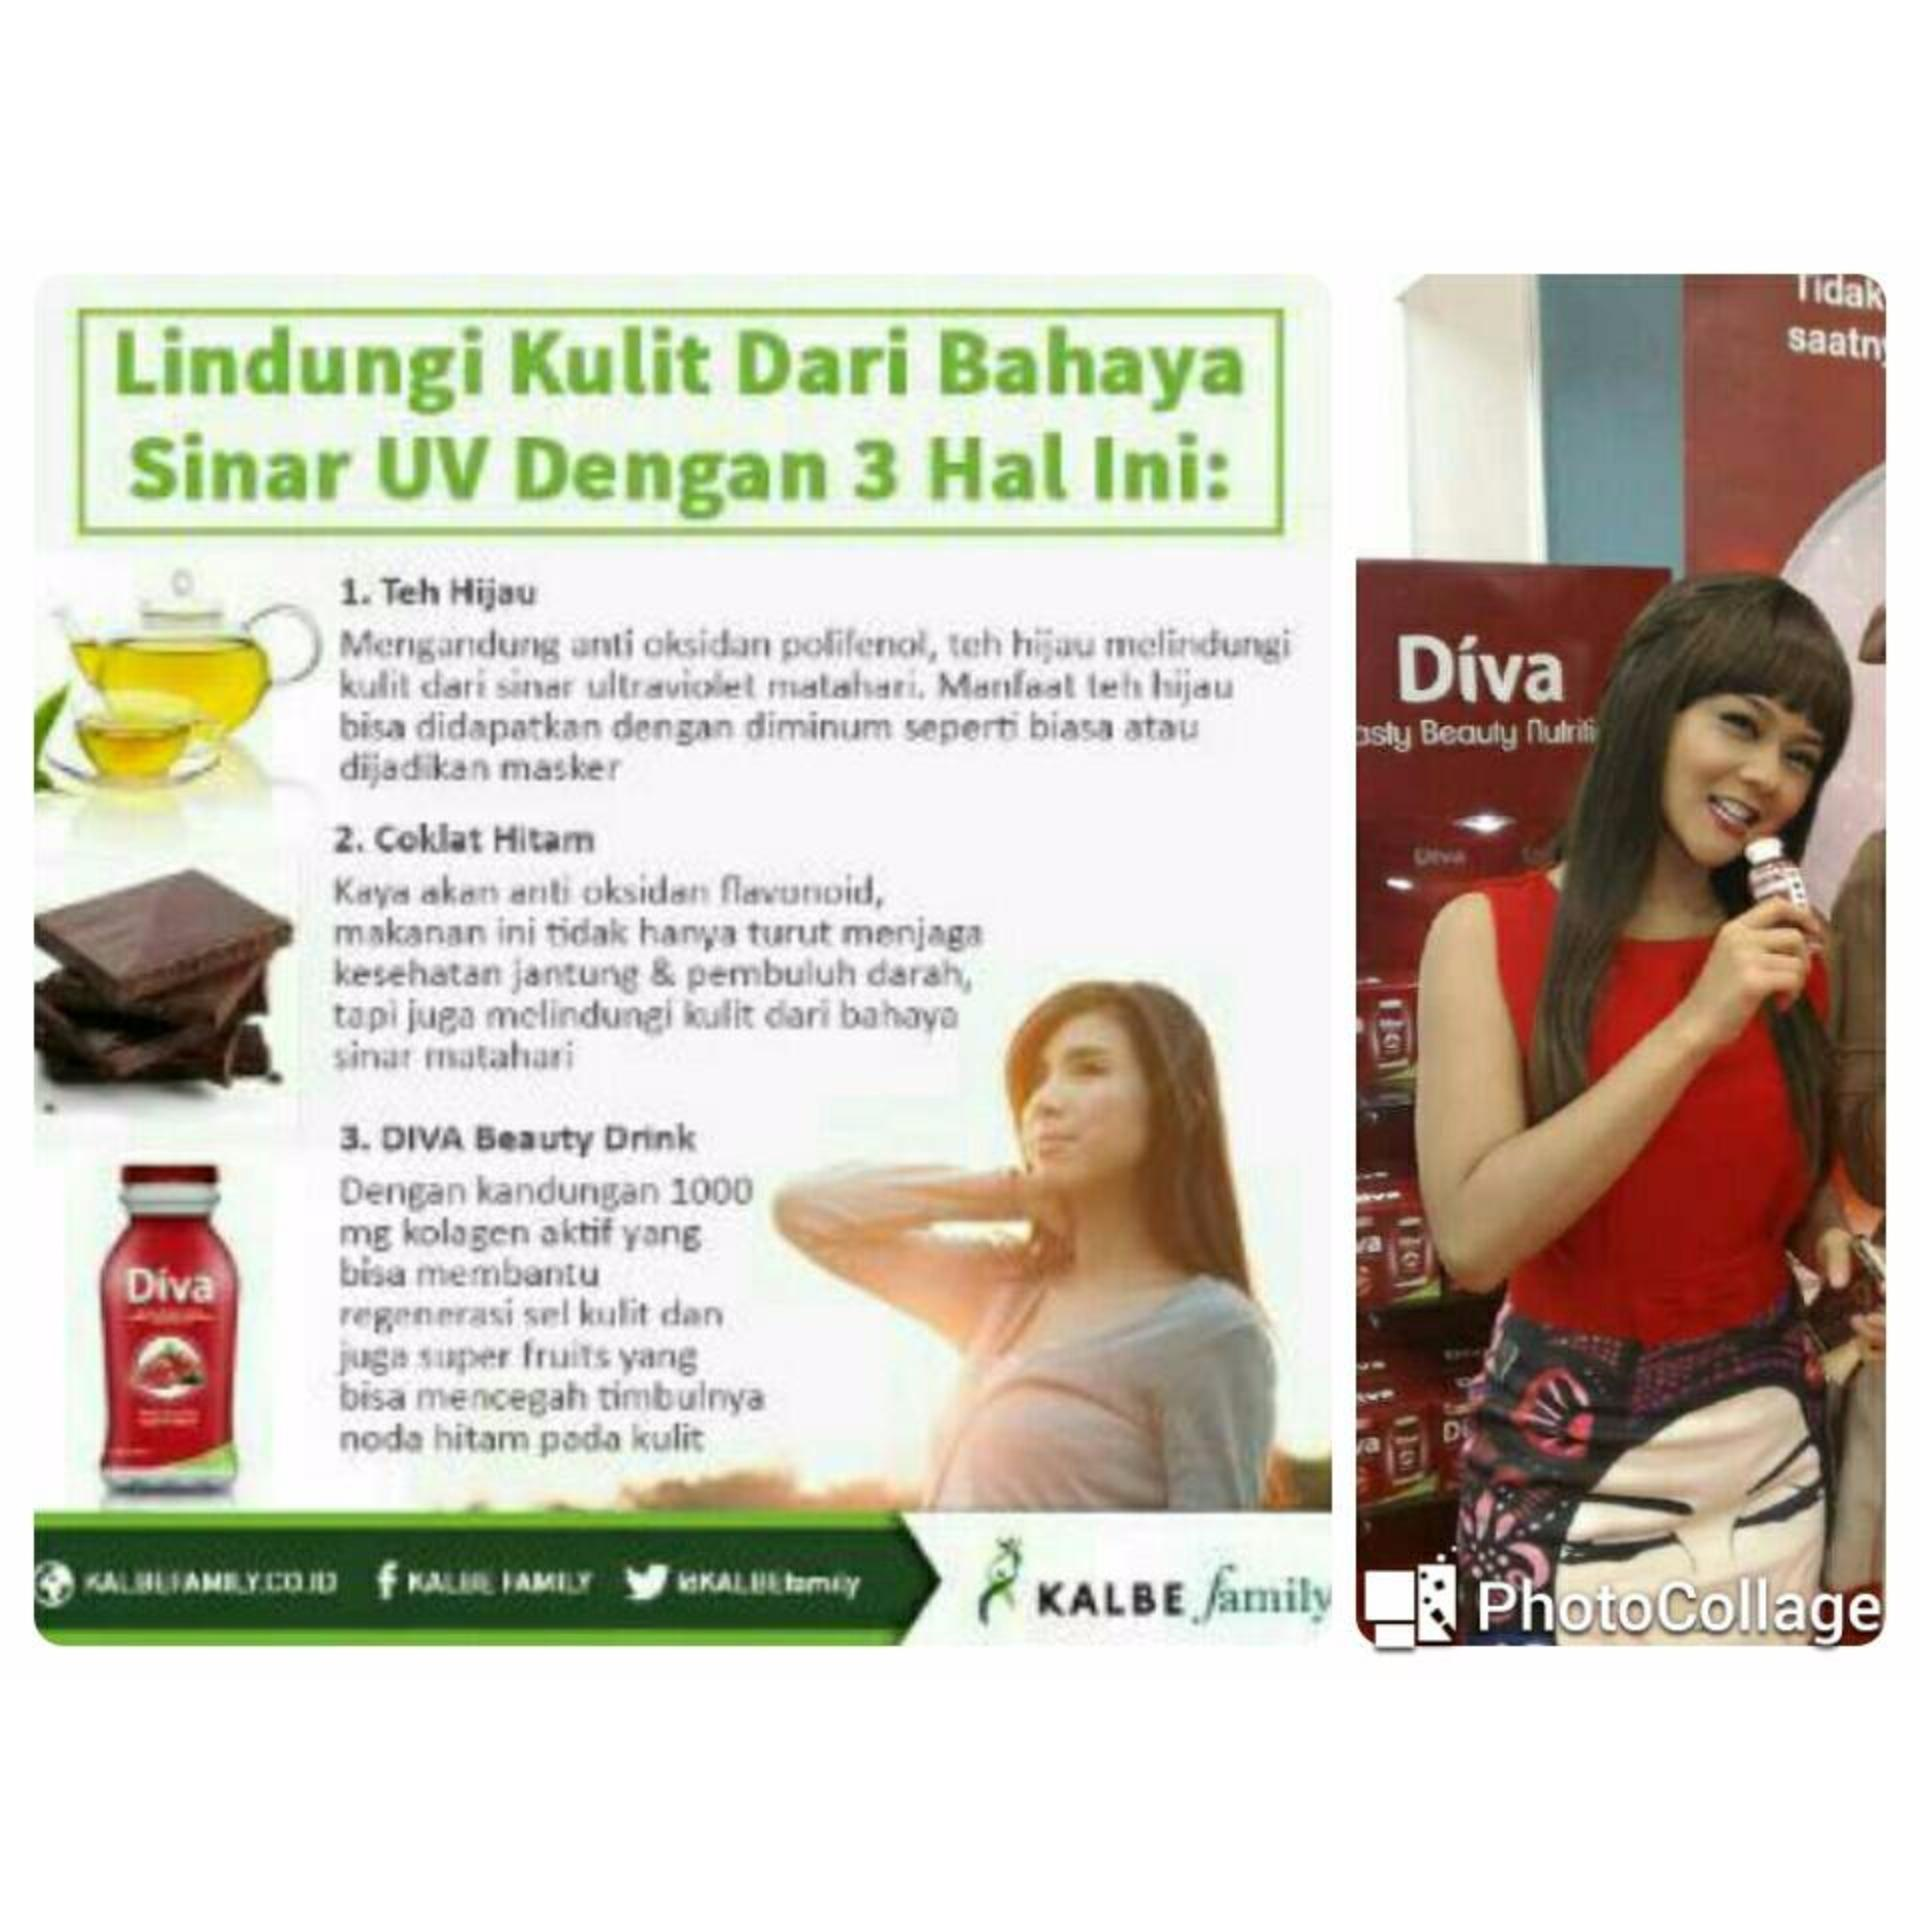 Kalbe Diva Beauty Drink Minuman Kolagen Aktif Paket Isi 6 Daftar Colis Sakura Collagen Botol Mixed Berry 1000mg Elastin X 80ml